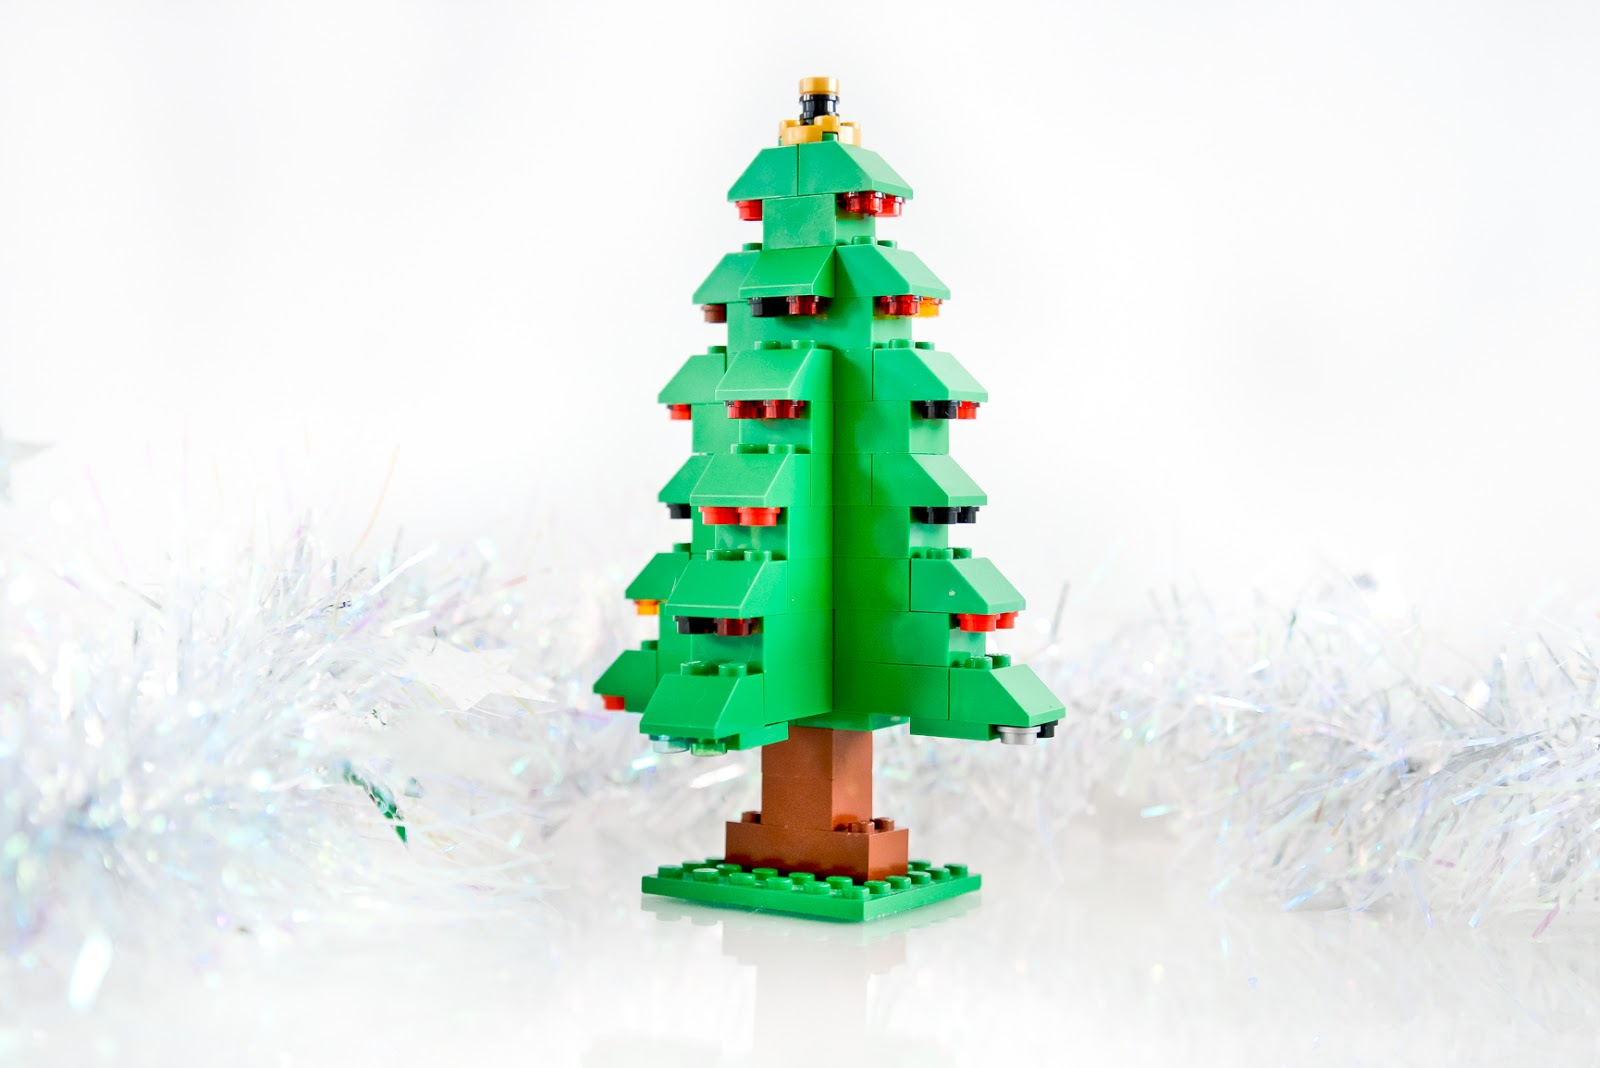 christmas lego, DIY christmas lego ornaments, DIY lego christmas decorations, Lego Christmas tree